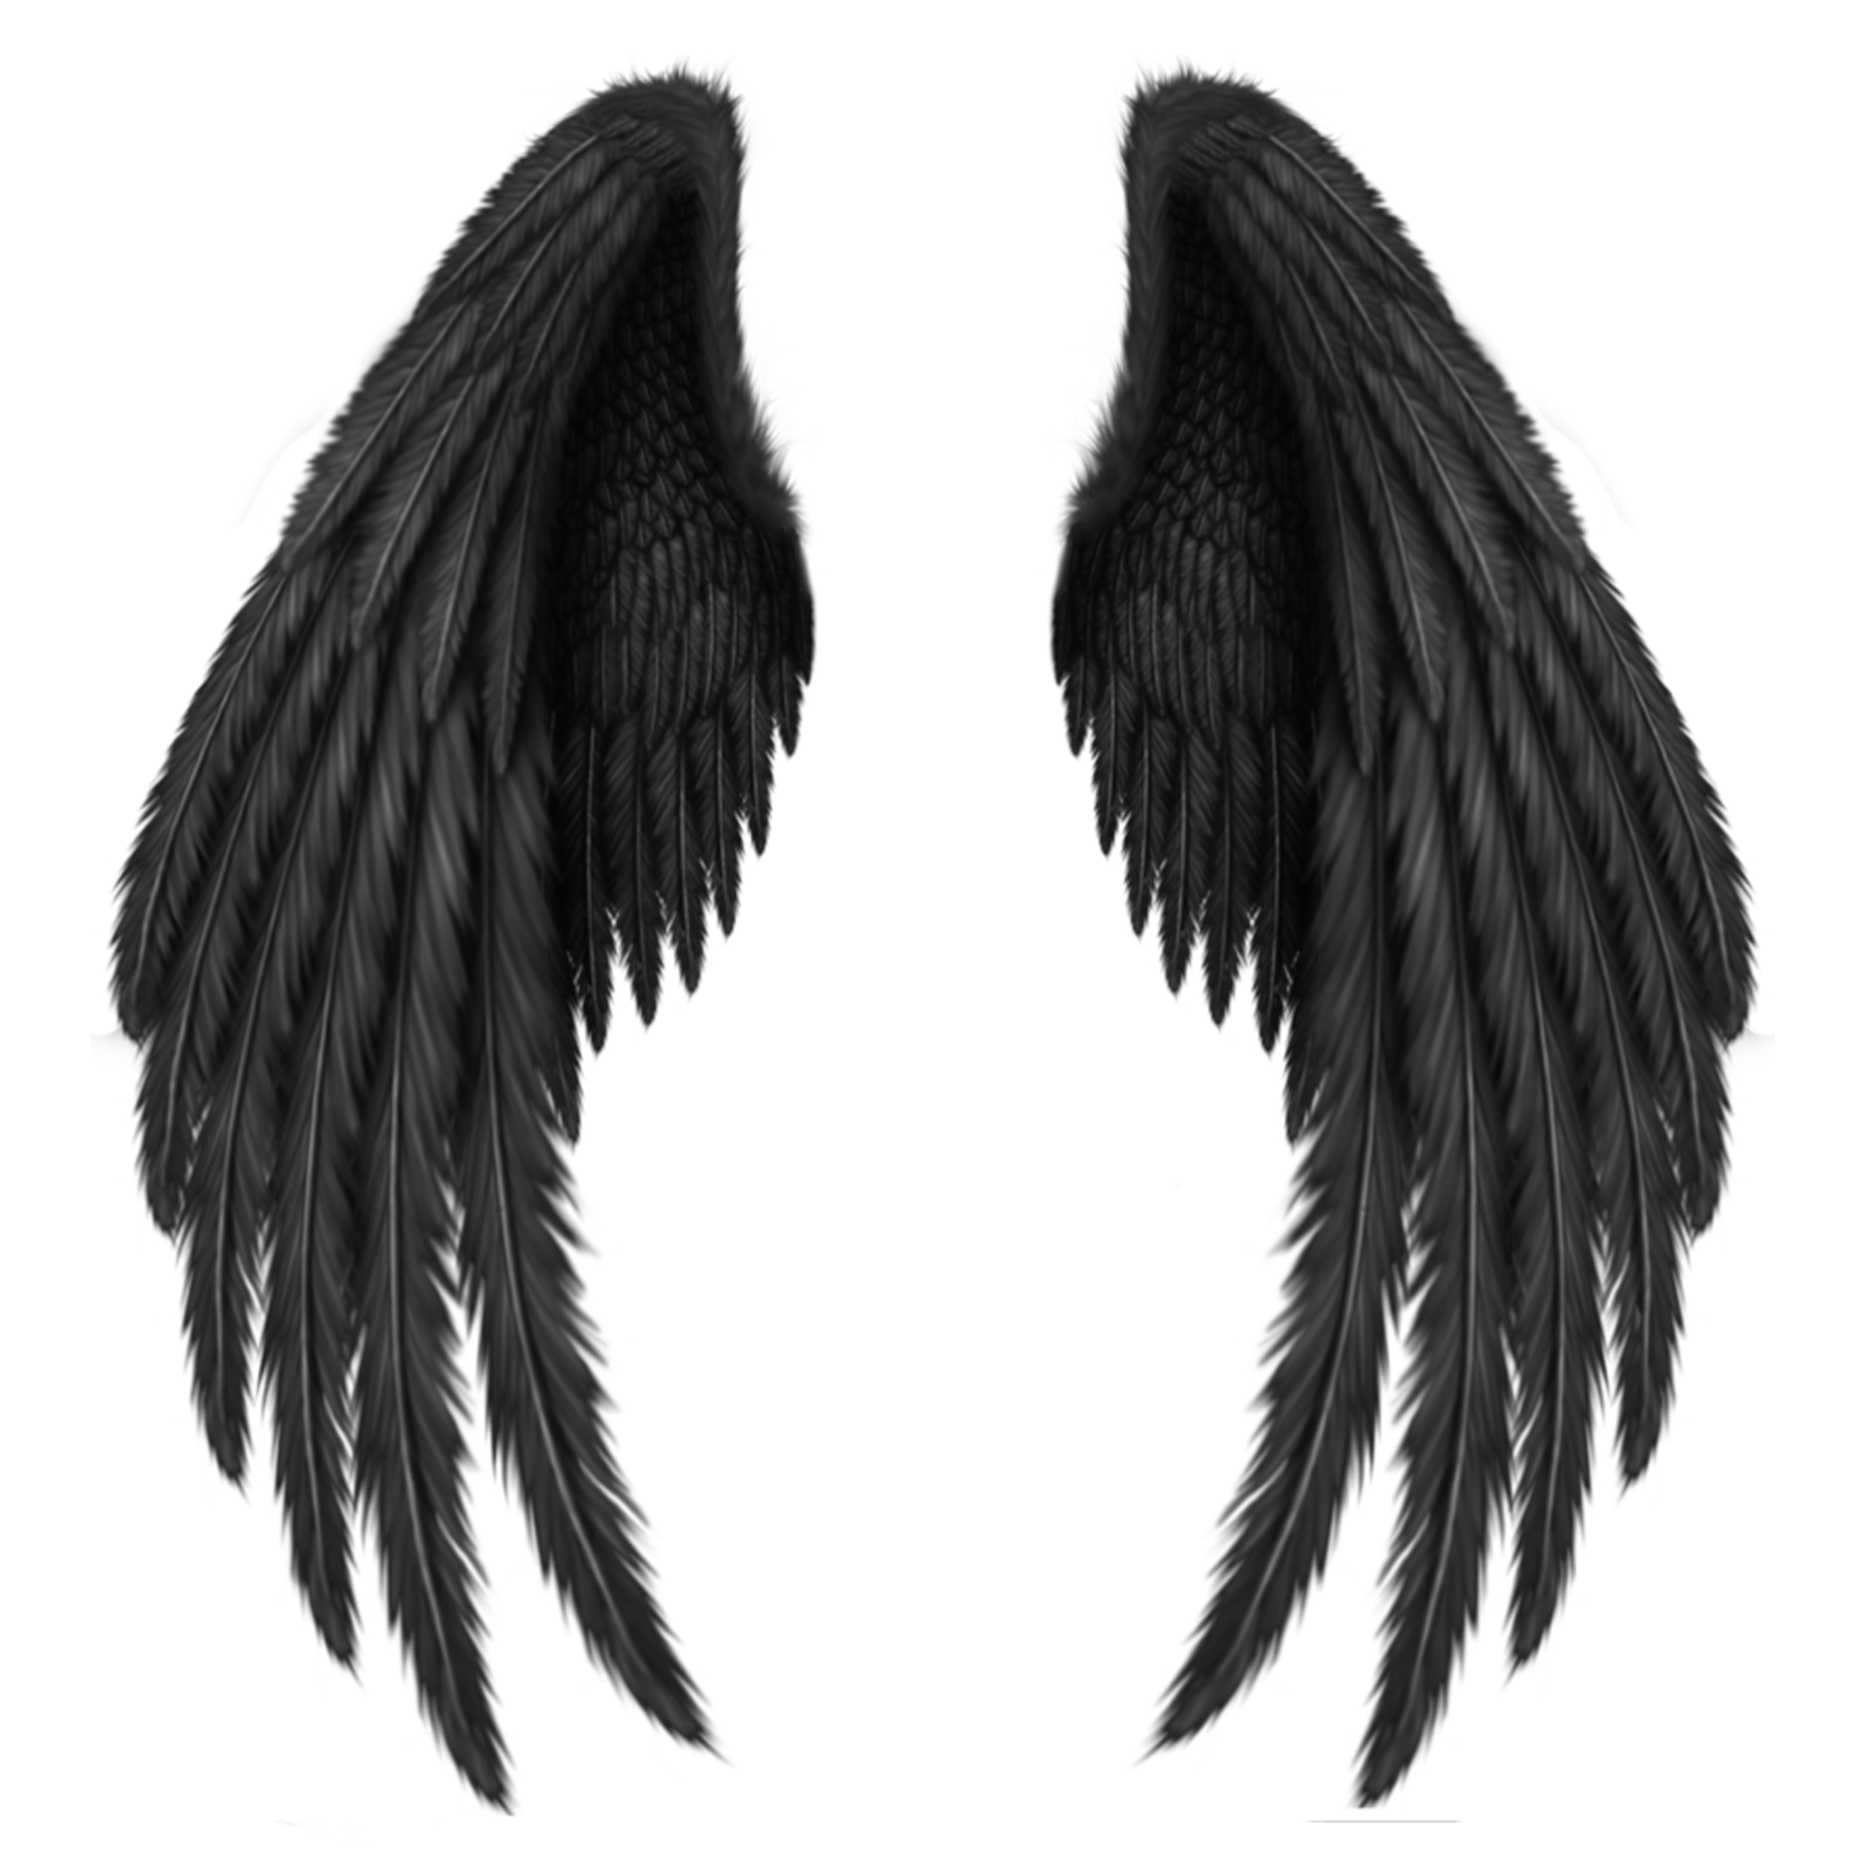 Black wings png. Images free download angel